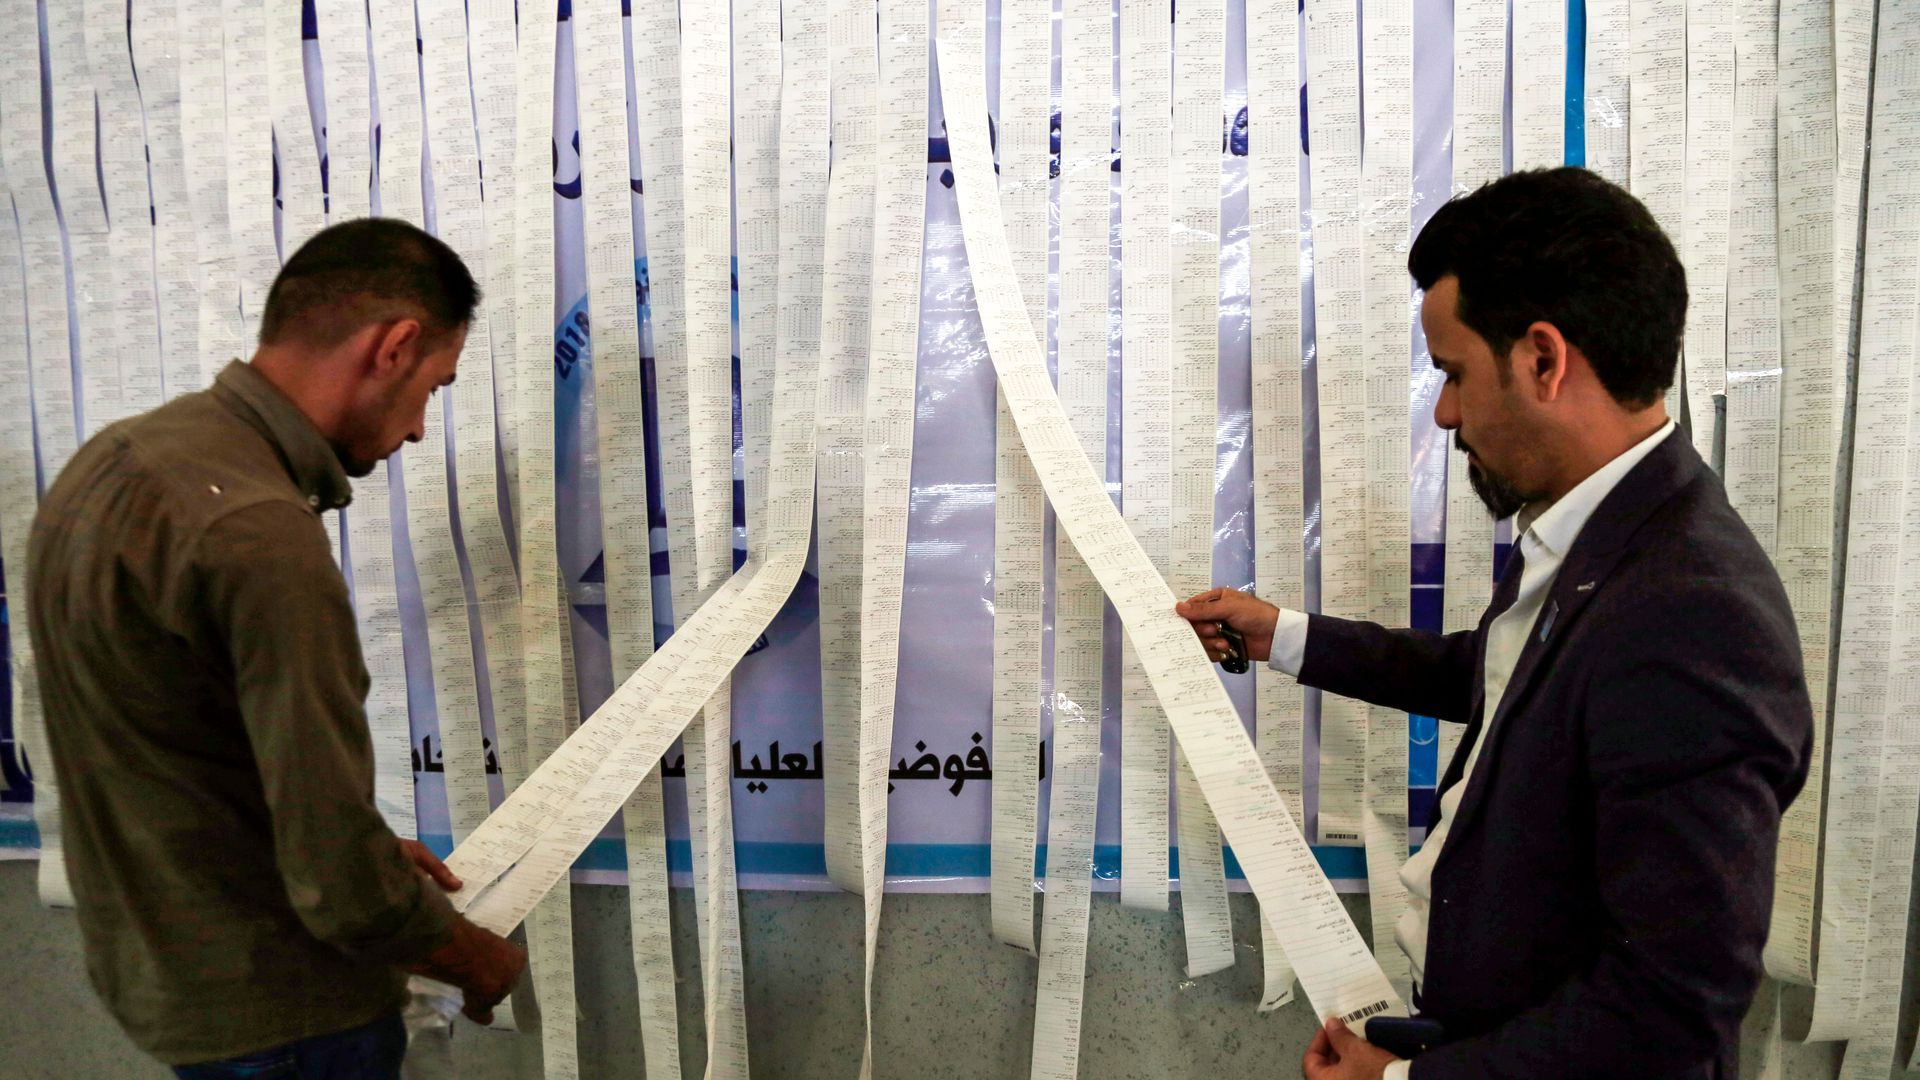 Iraqi electoral commission employees examine electronic counting machine print-outs in the central holy city of Najaf on May 13, 2018.